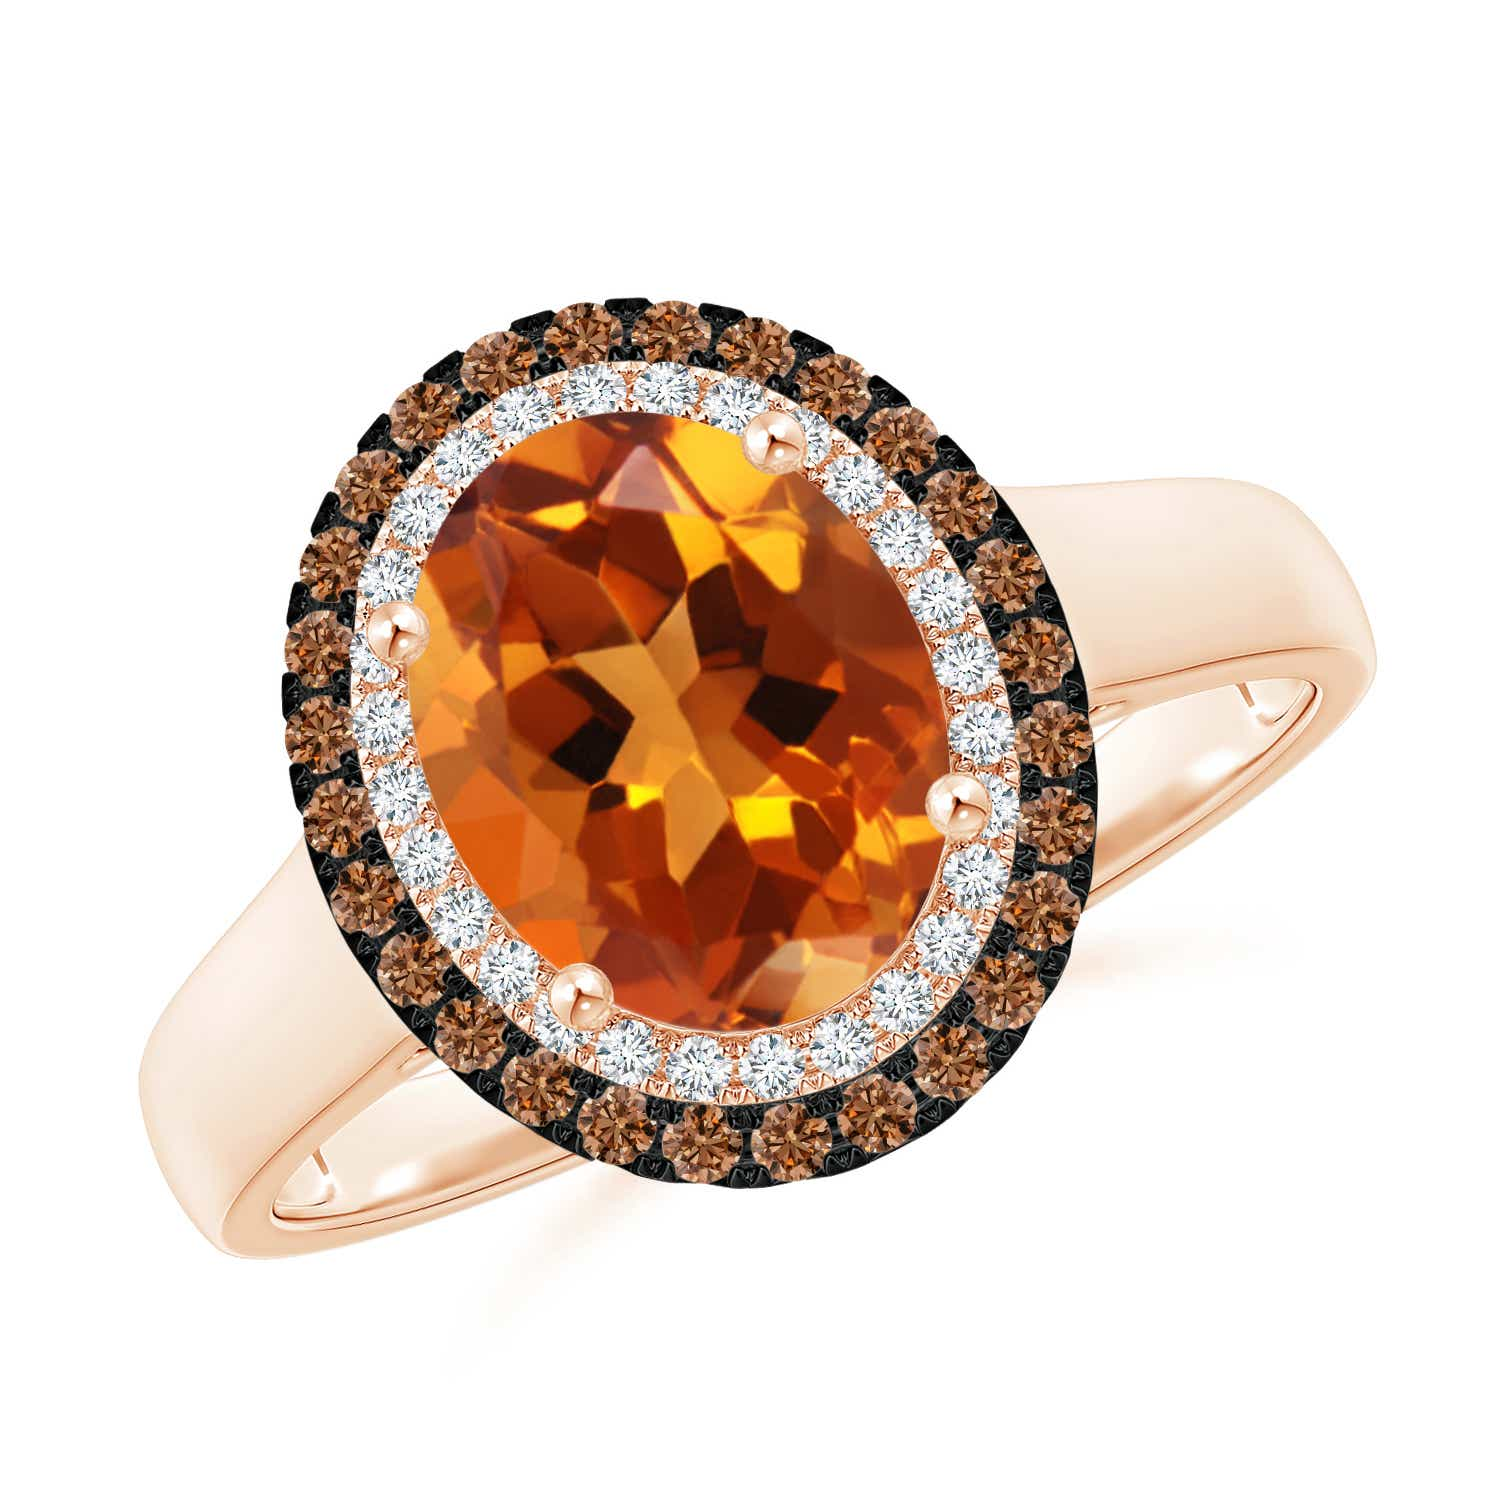 Angara Vintage Diamond Floral Halo Oval Citrine Cocktail Ring in Yellow Gold